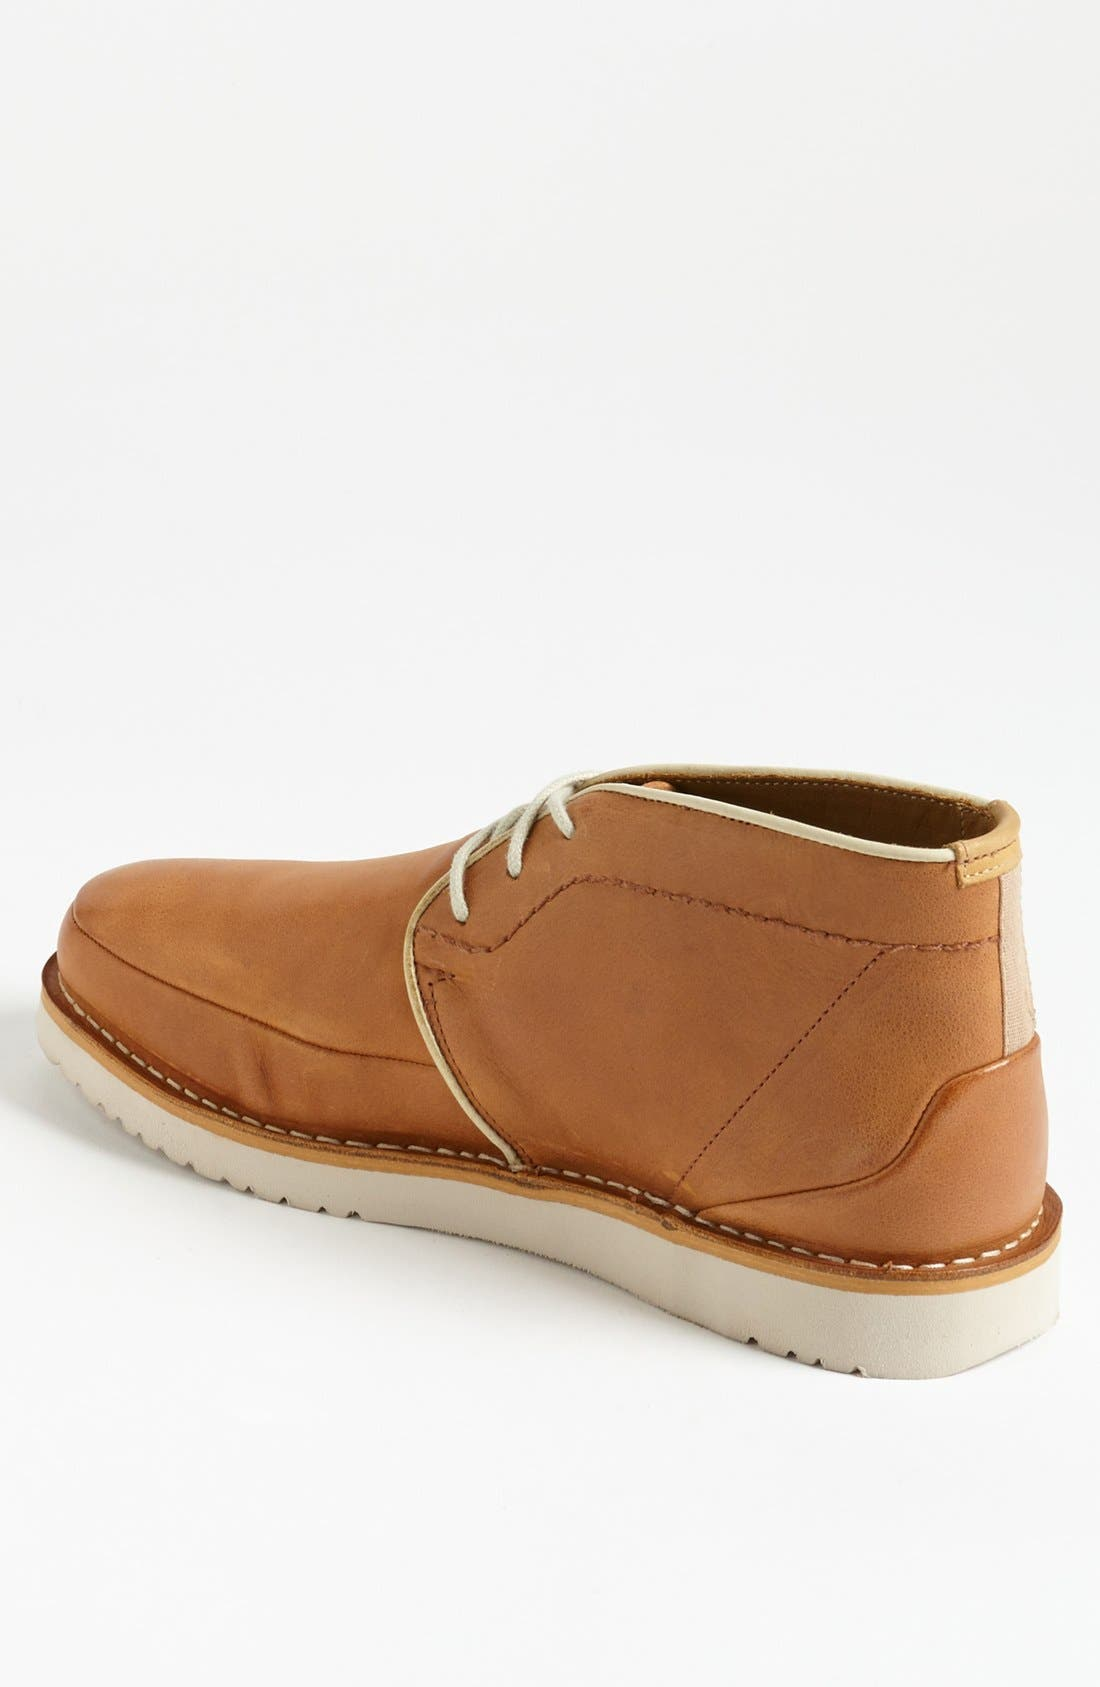 Alternate Image 2  - J SHOES 'Selby' Chukka Boot